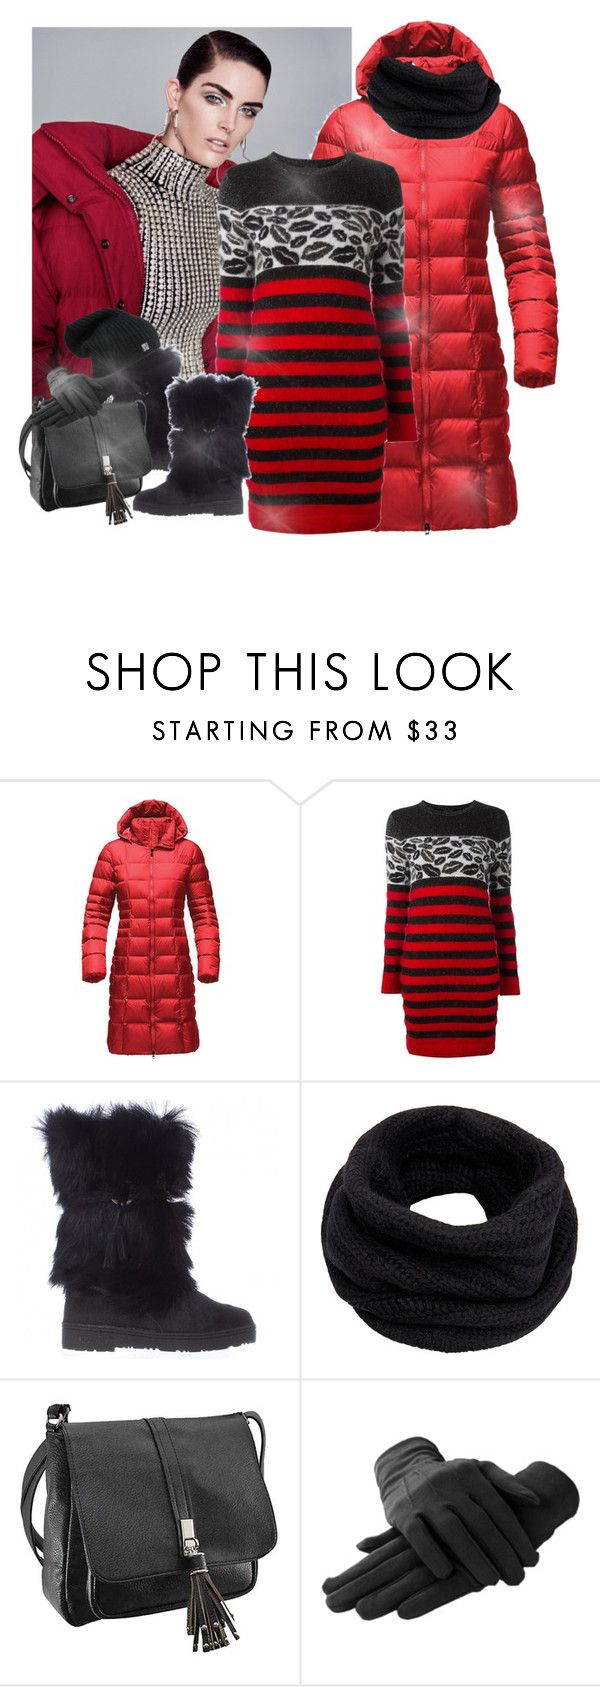 """""""Hladan Januar"""" by aida-ida ❤ liked on Polyvore featuring The North Face, Just Cavalli, Bearpaw and Helmut Lang"""